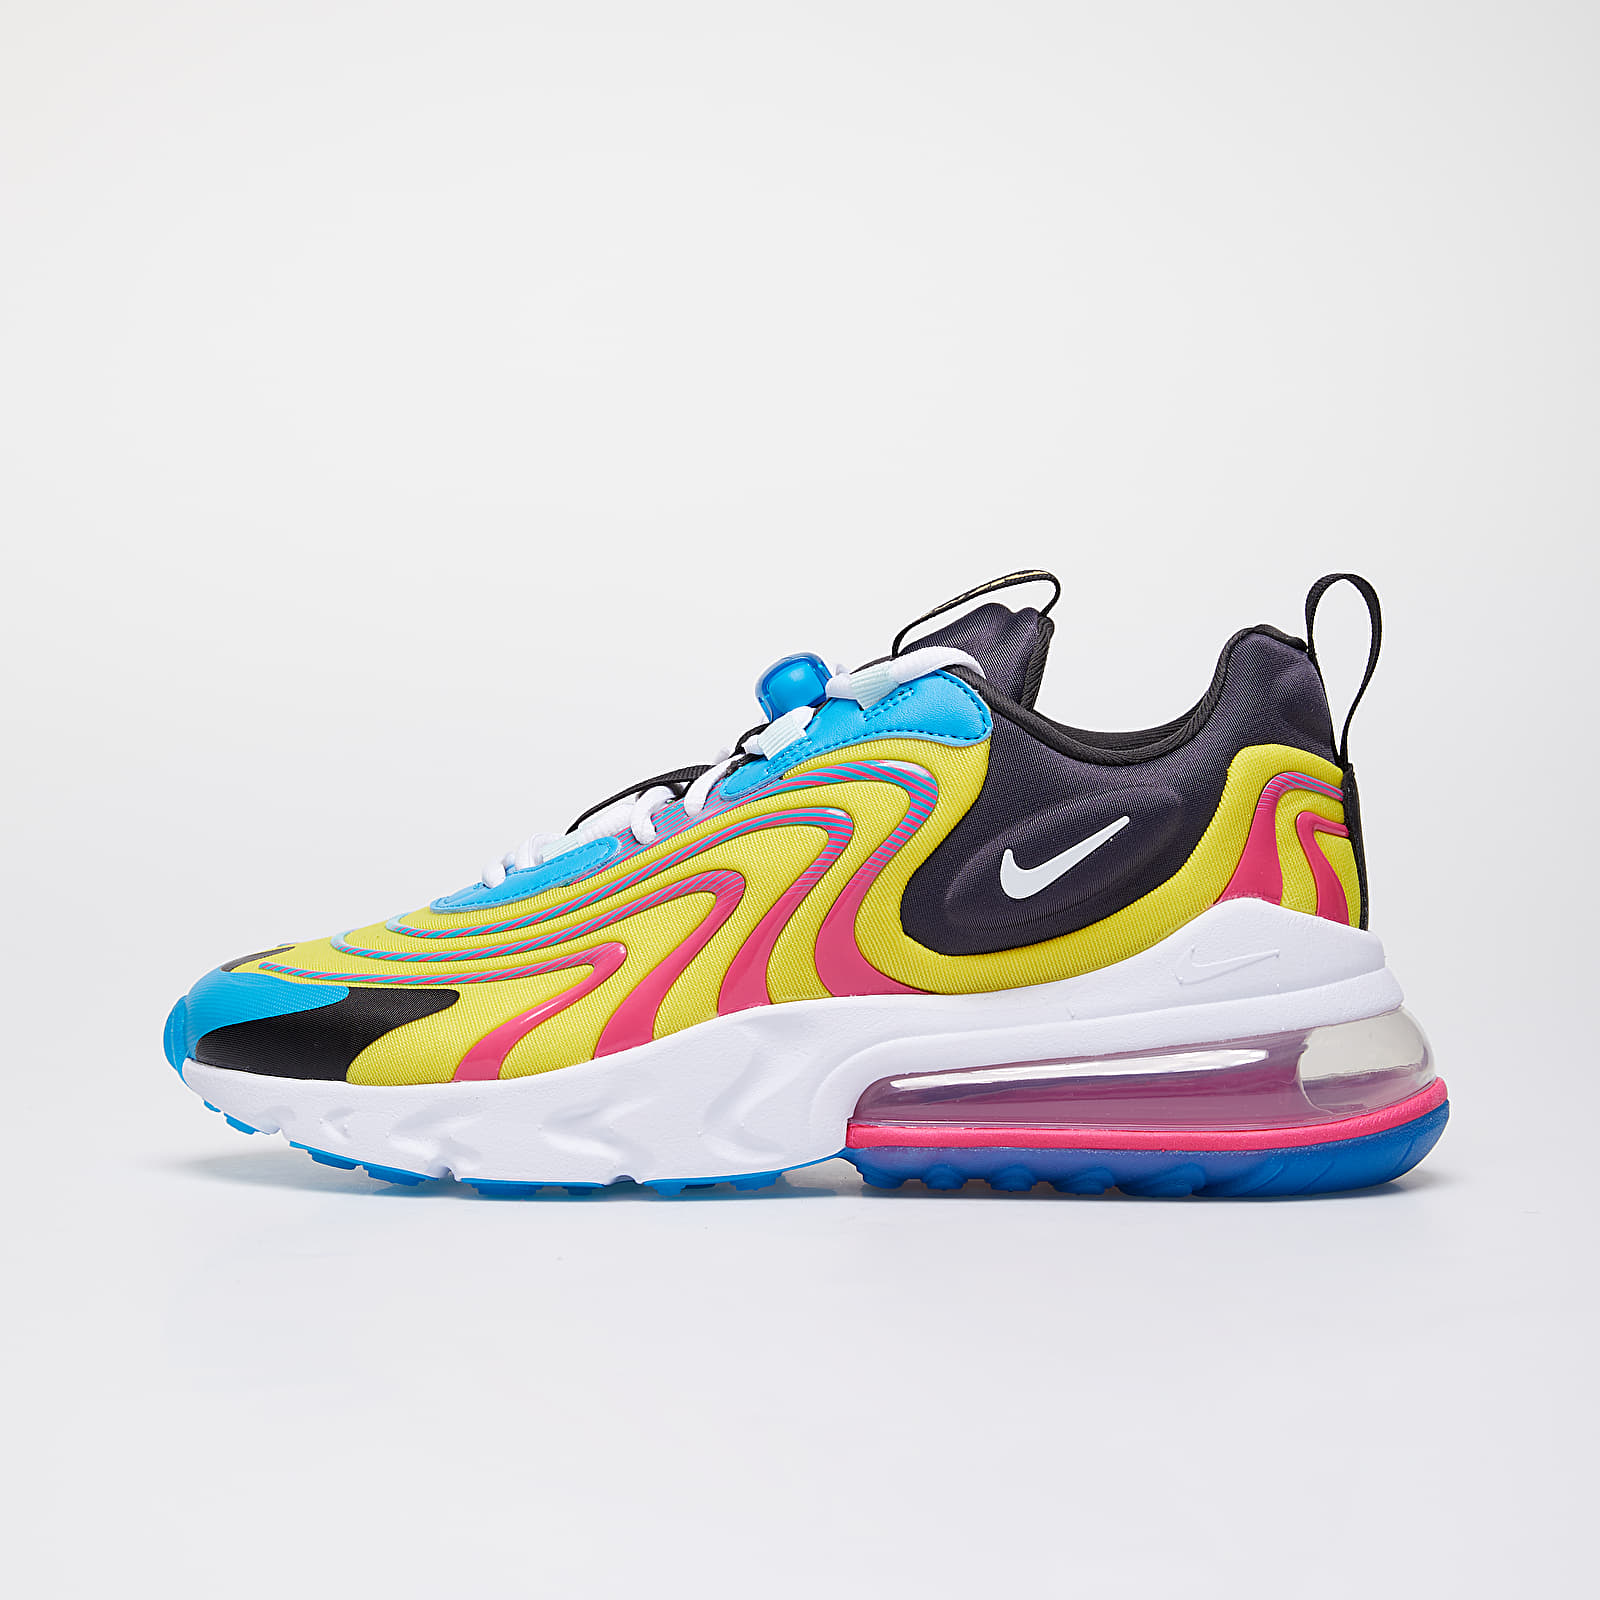 Männer Nike Air Max 270 React Eng Laser Blue/ White-Anthracite-Watermelon